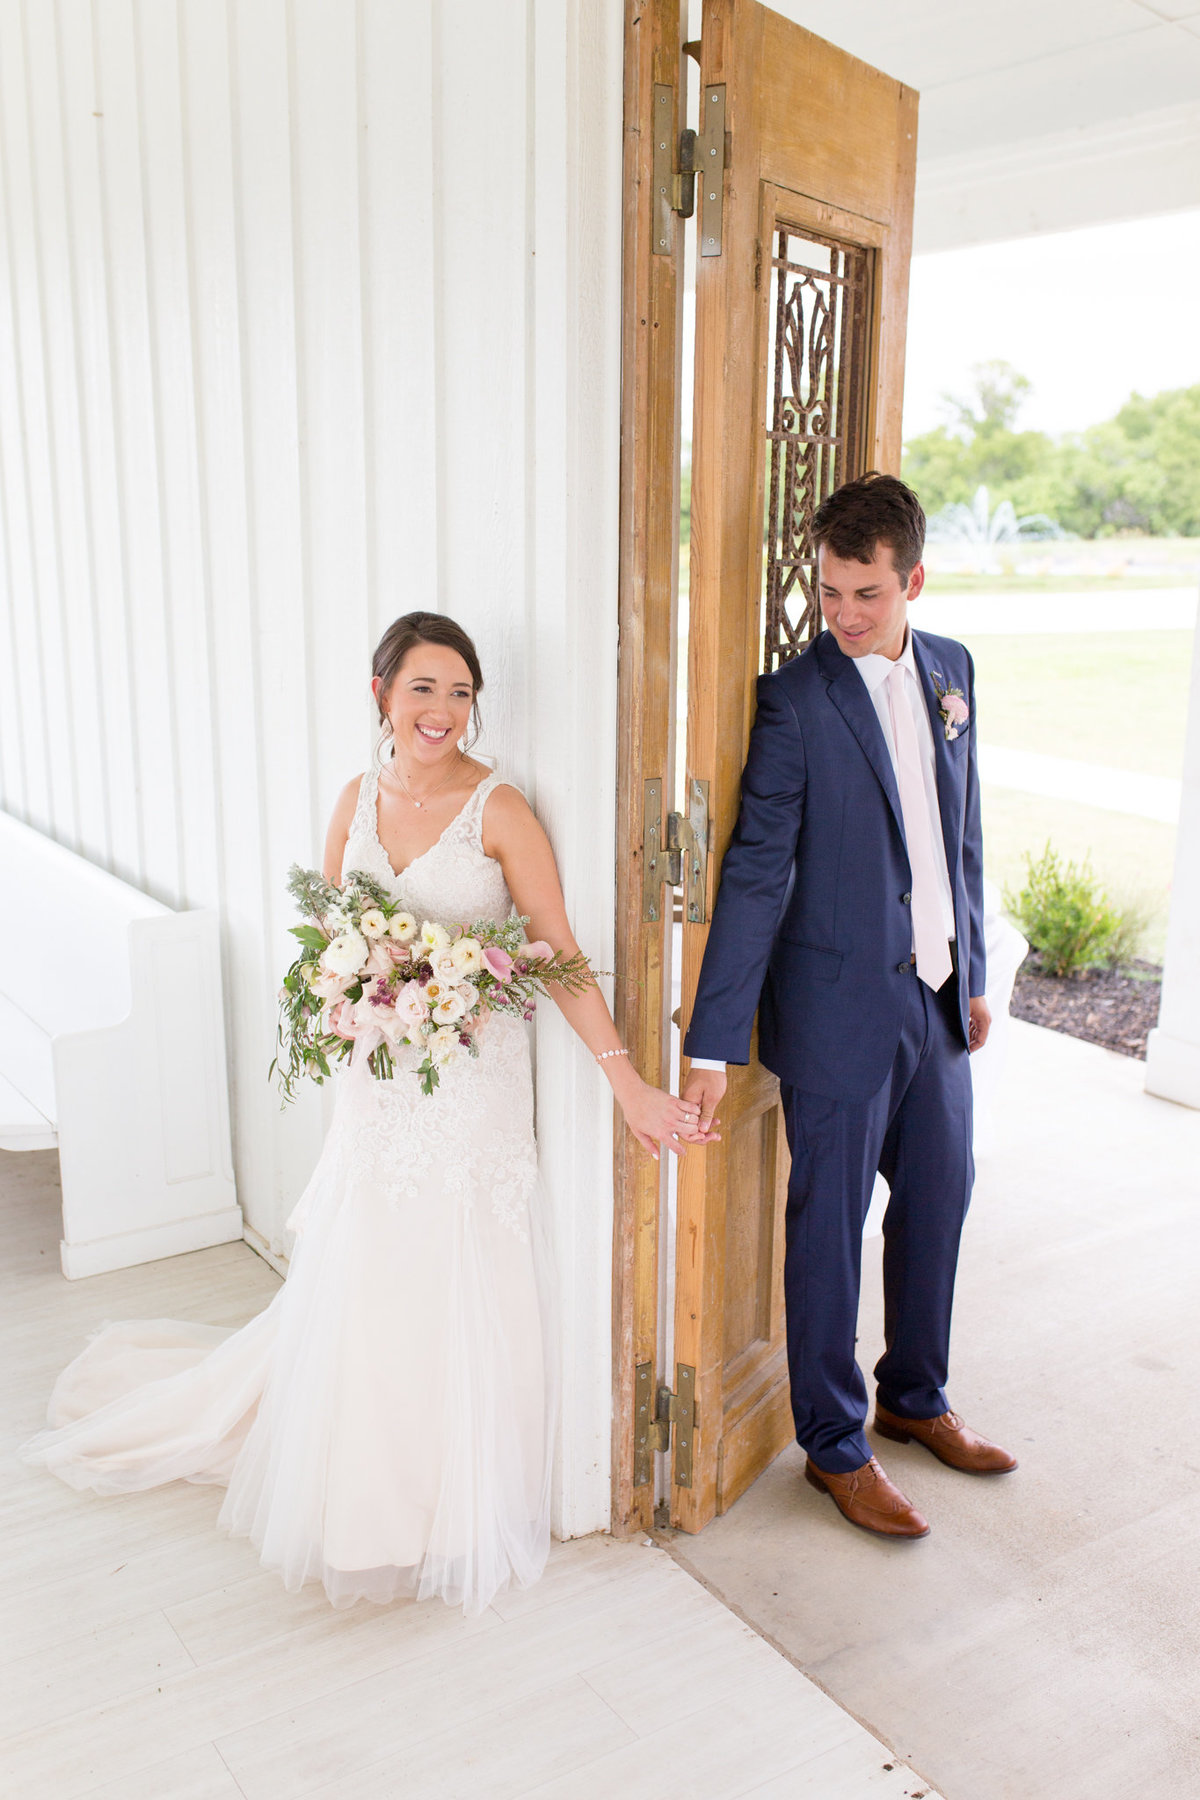 Grand Ivory Wedding| Dallas, Texas | DFW Wedding Photographer | Sami Kathryn Photography-53